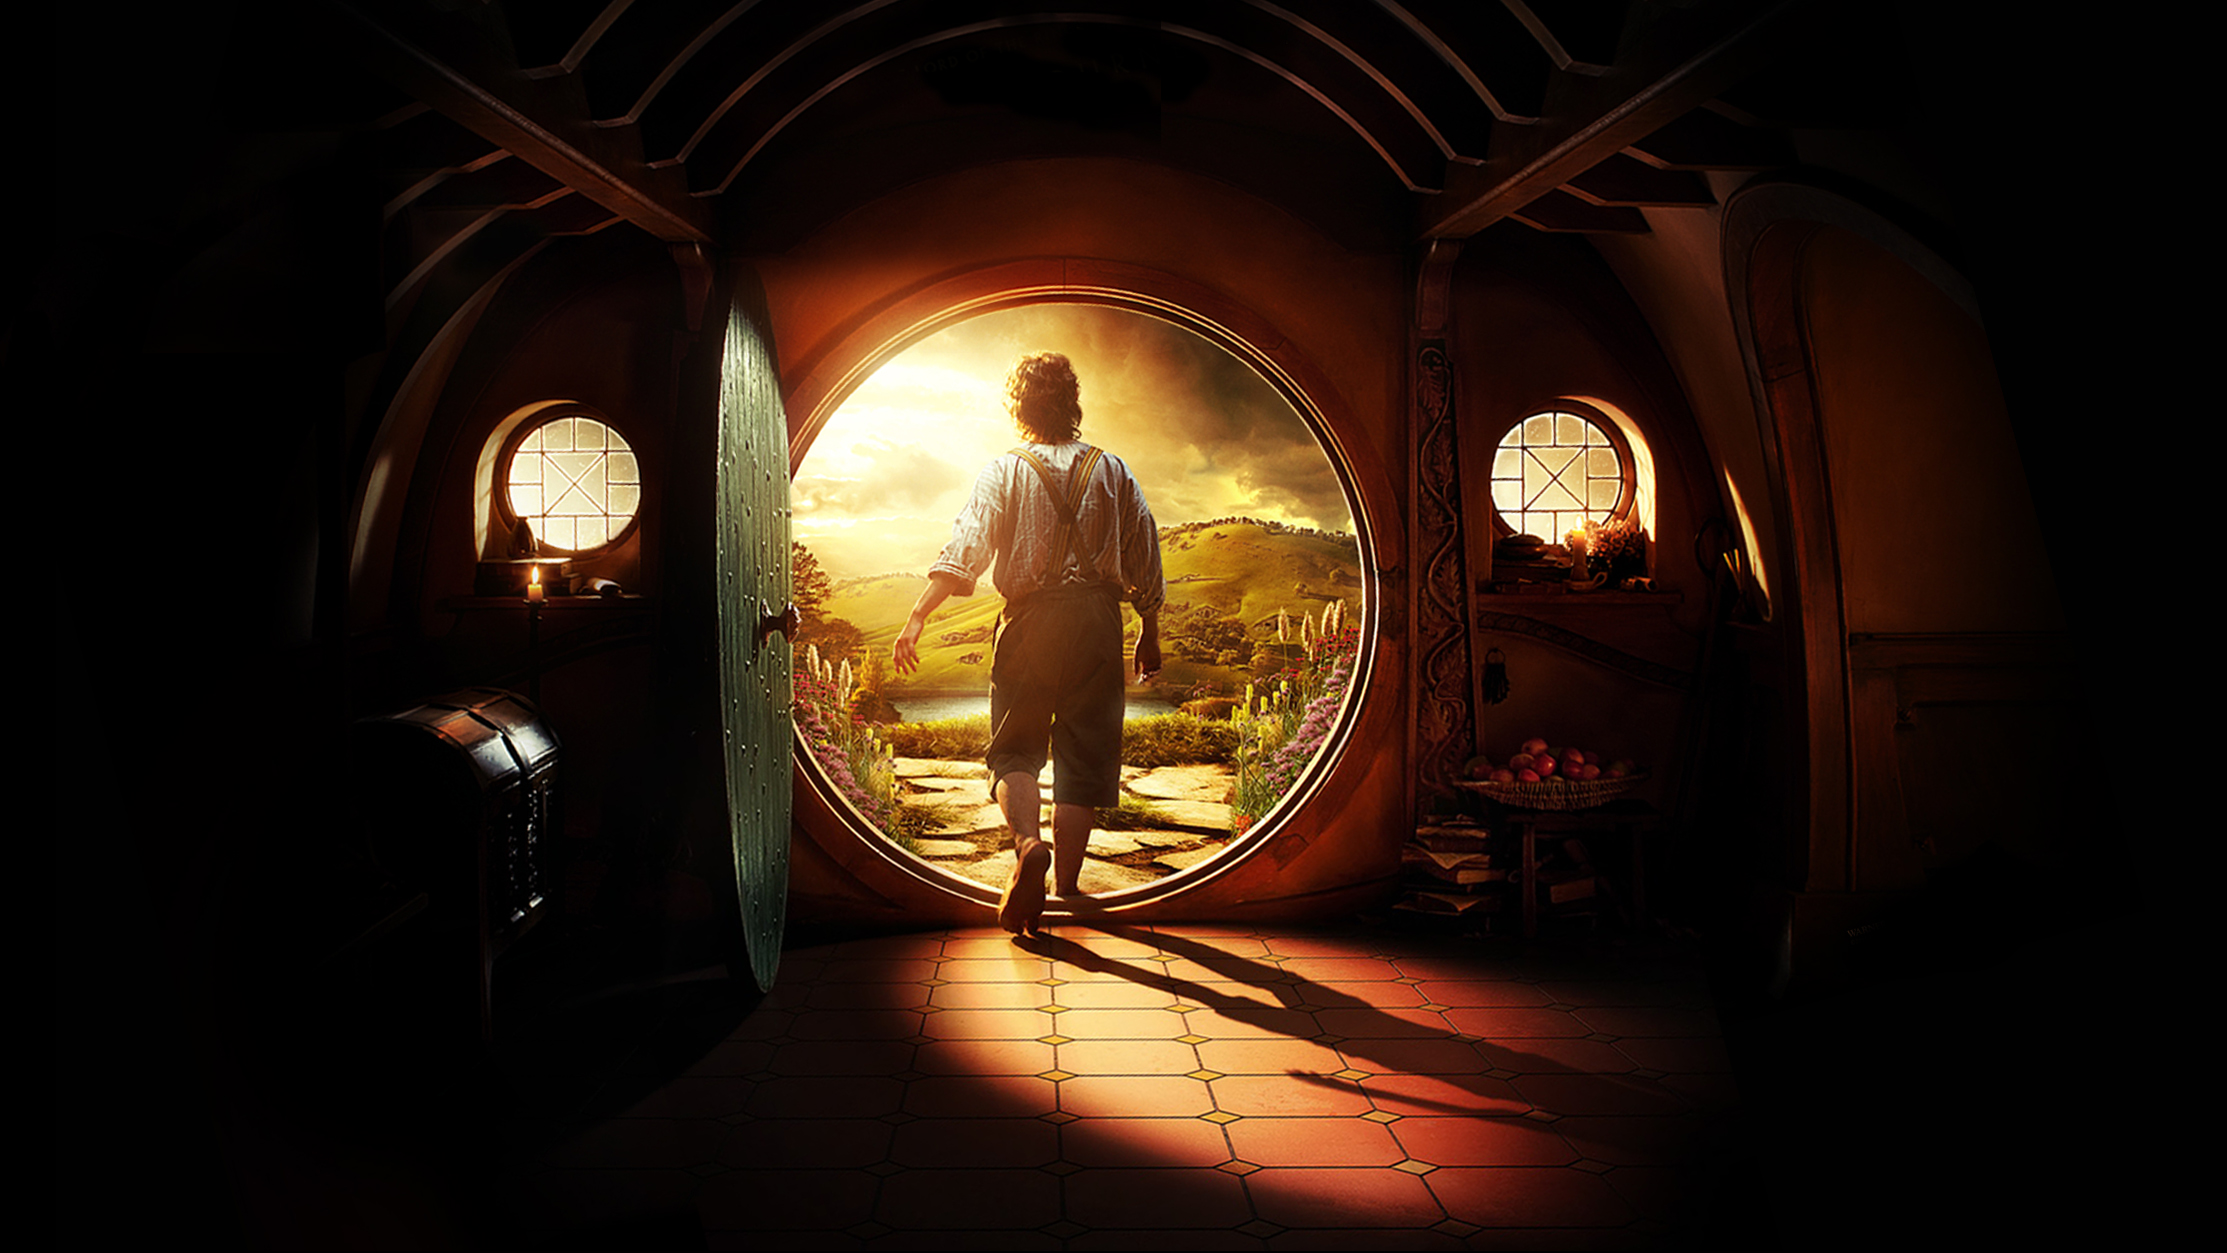 The Hobbit Movie Wallpapers 2227x1253